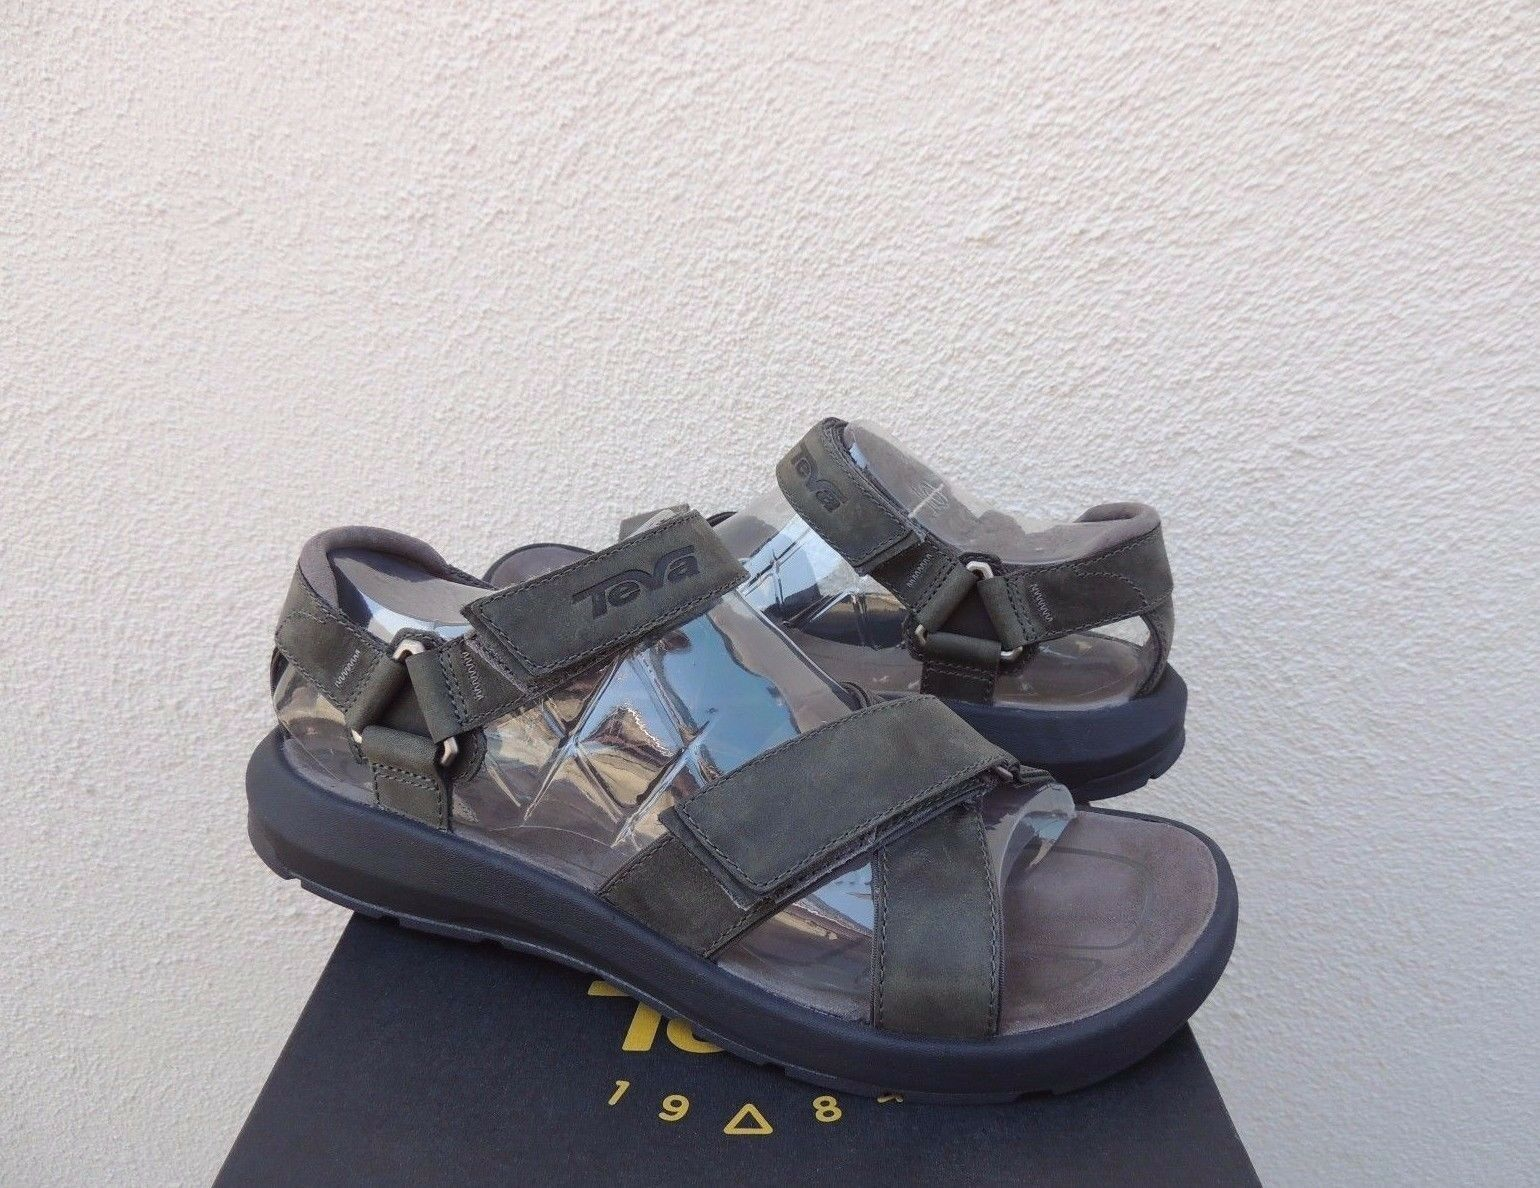 TEVA BERKELEY GREY LEATHER STRAPPY SPORT SANDALS, Uomo US 9/ EUR 42 ~NWT